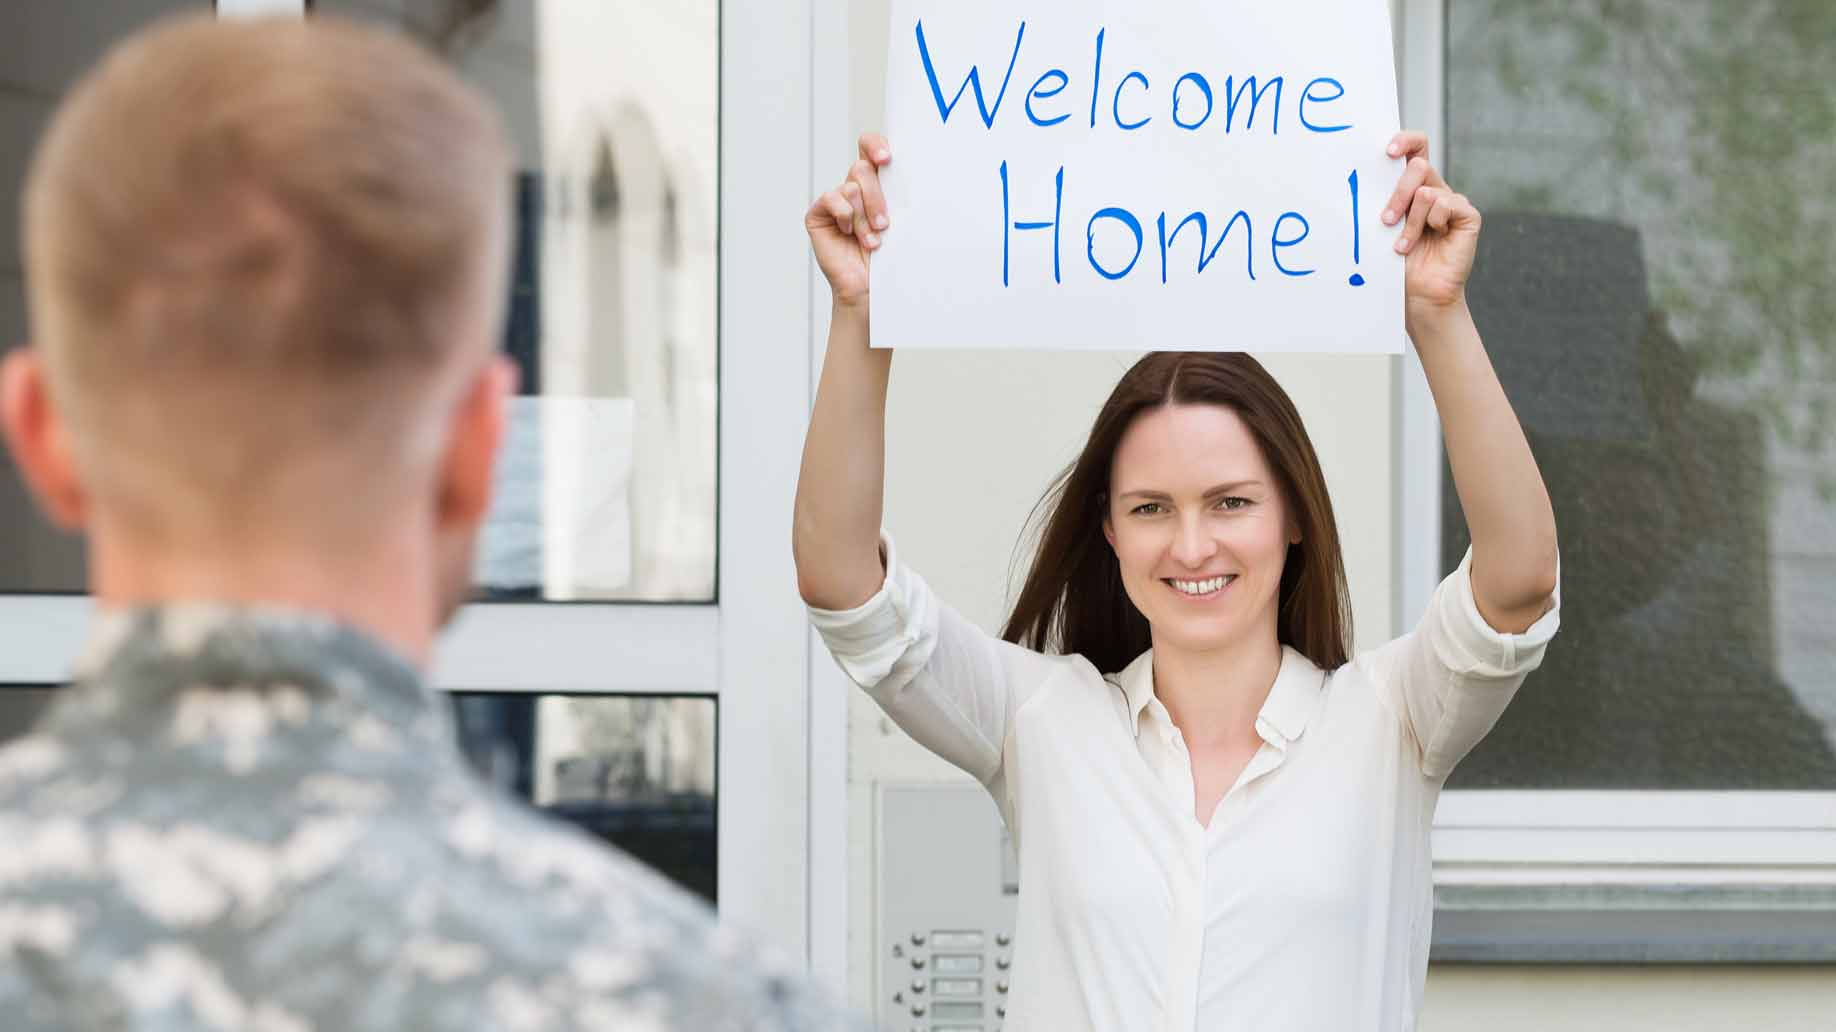 soldier welcome home